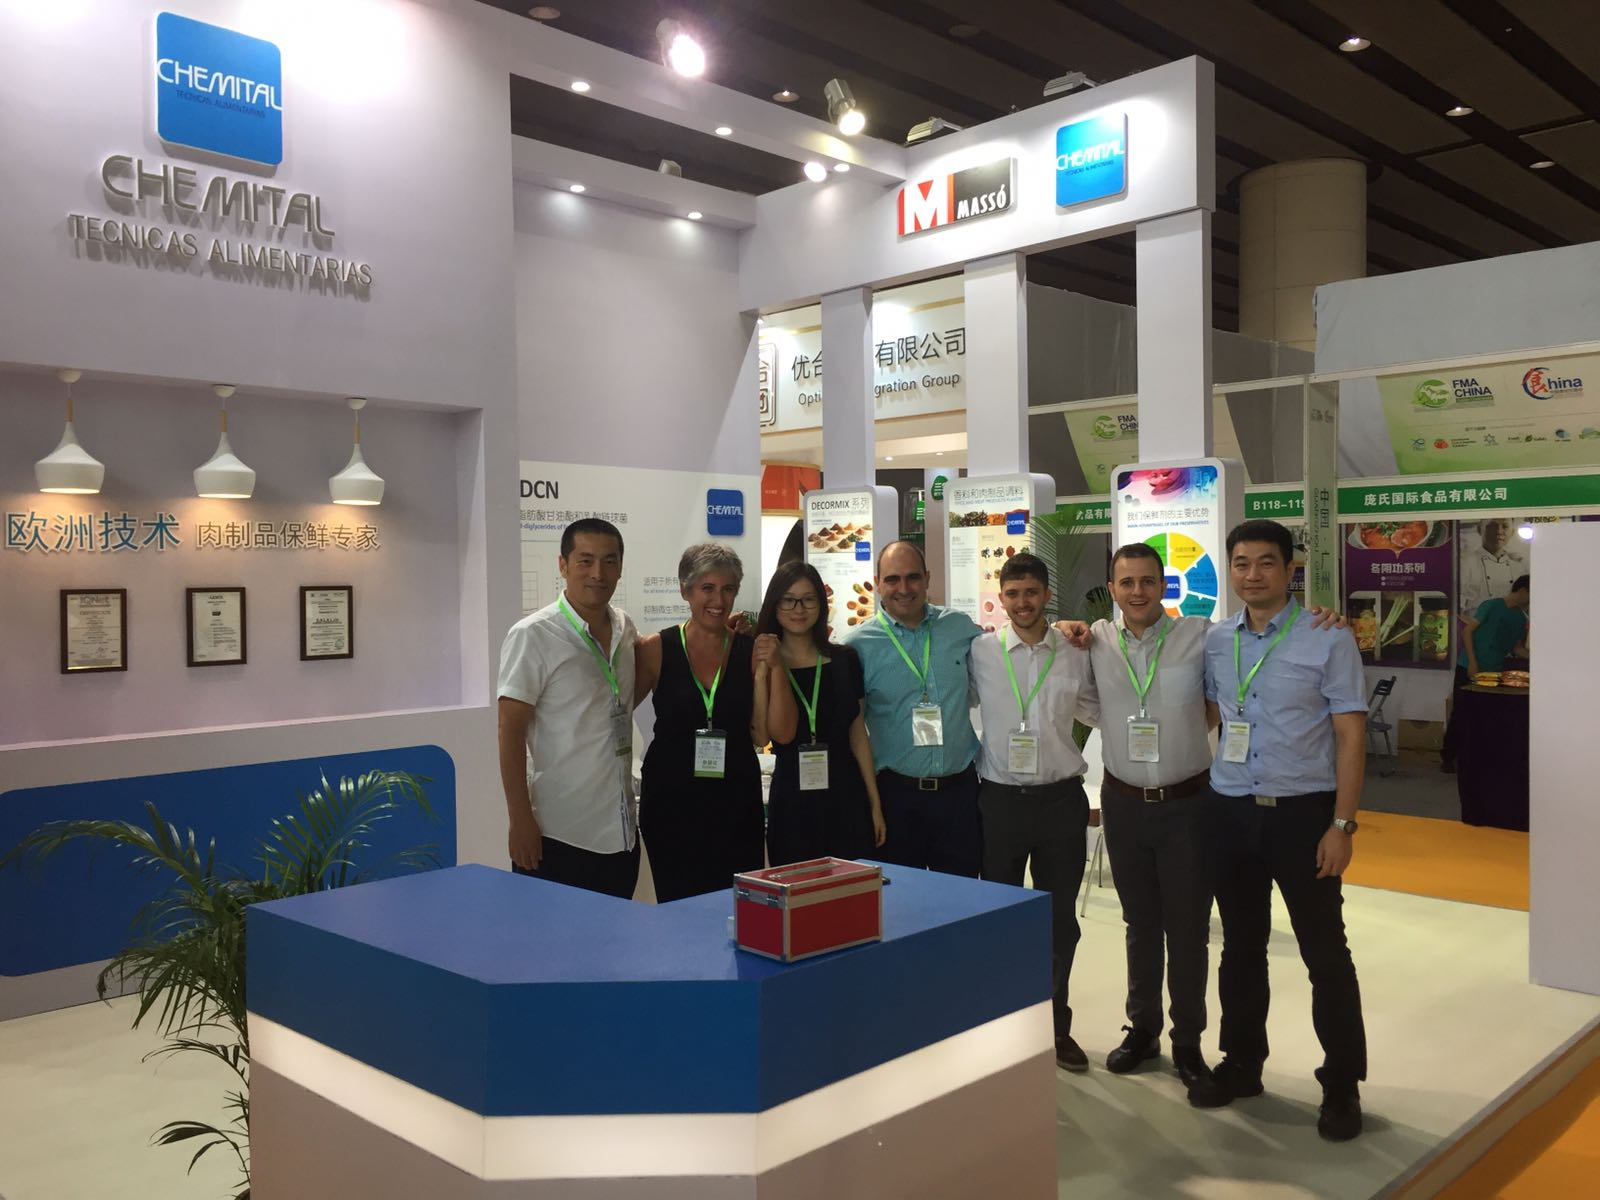 OUR CHEMITAL TEAM IN FMA EXHIBITION (CHINA)